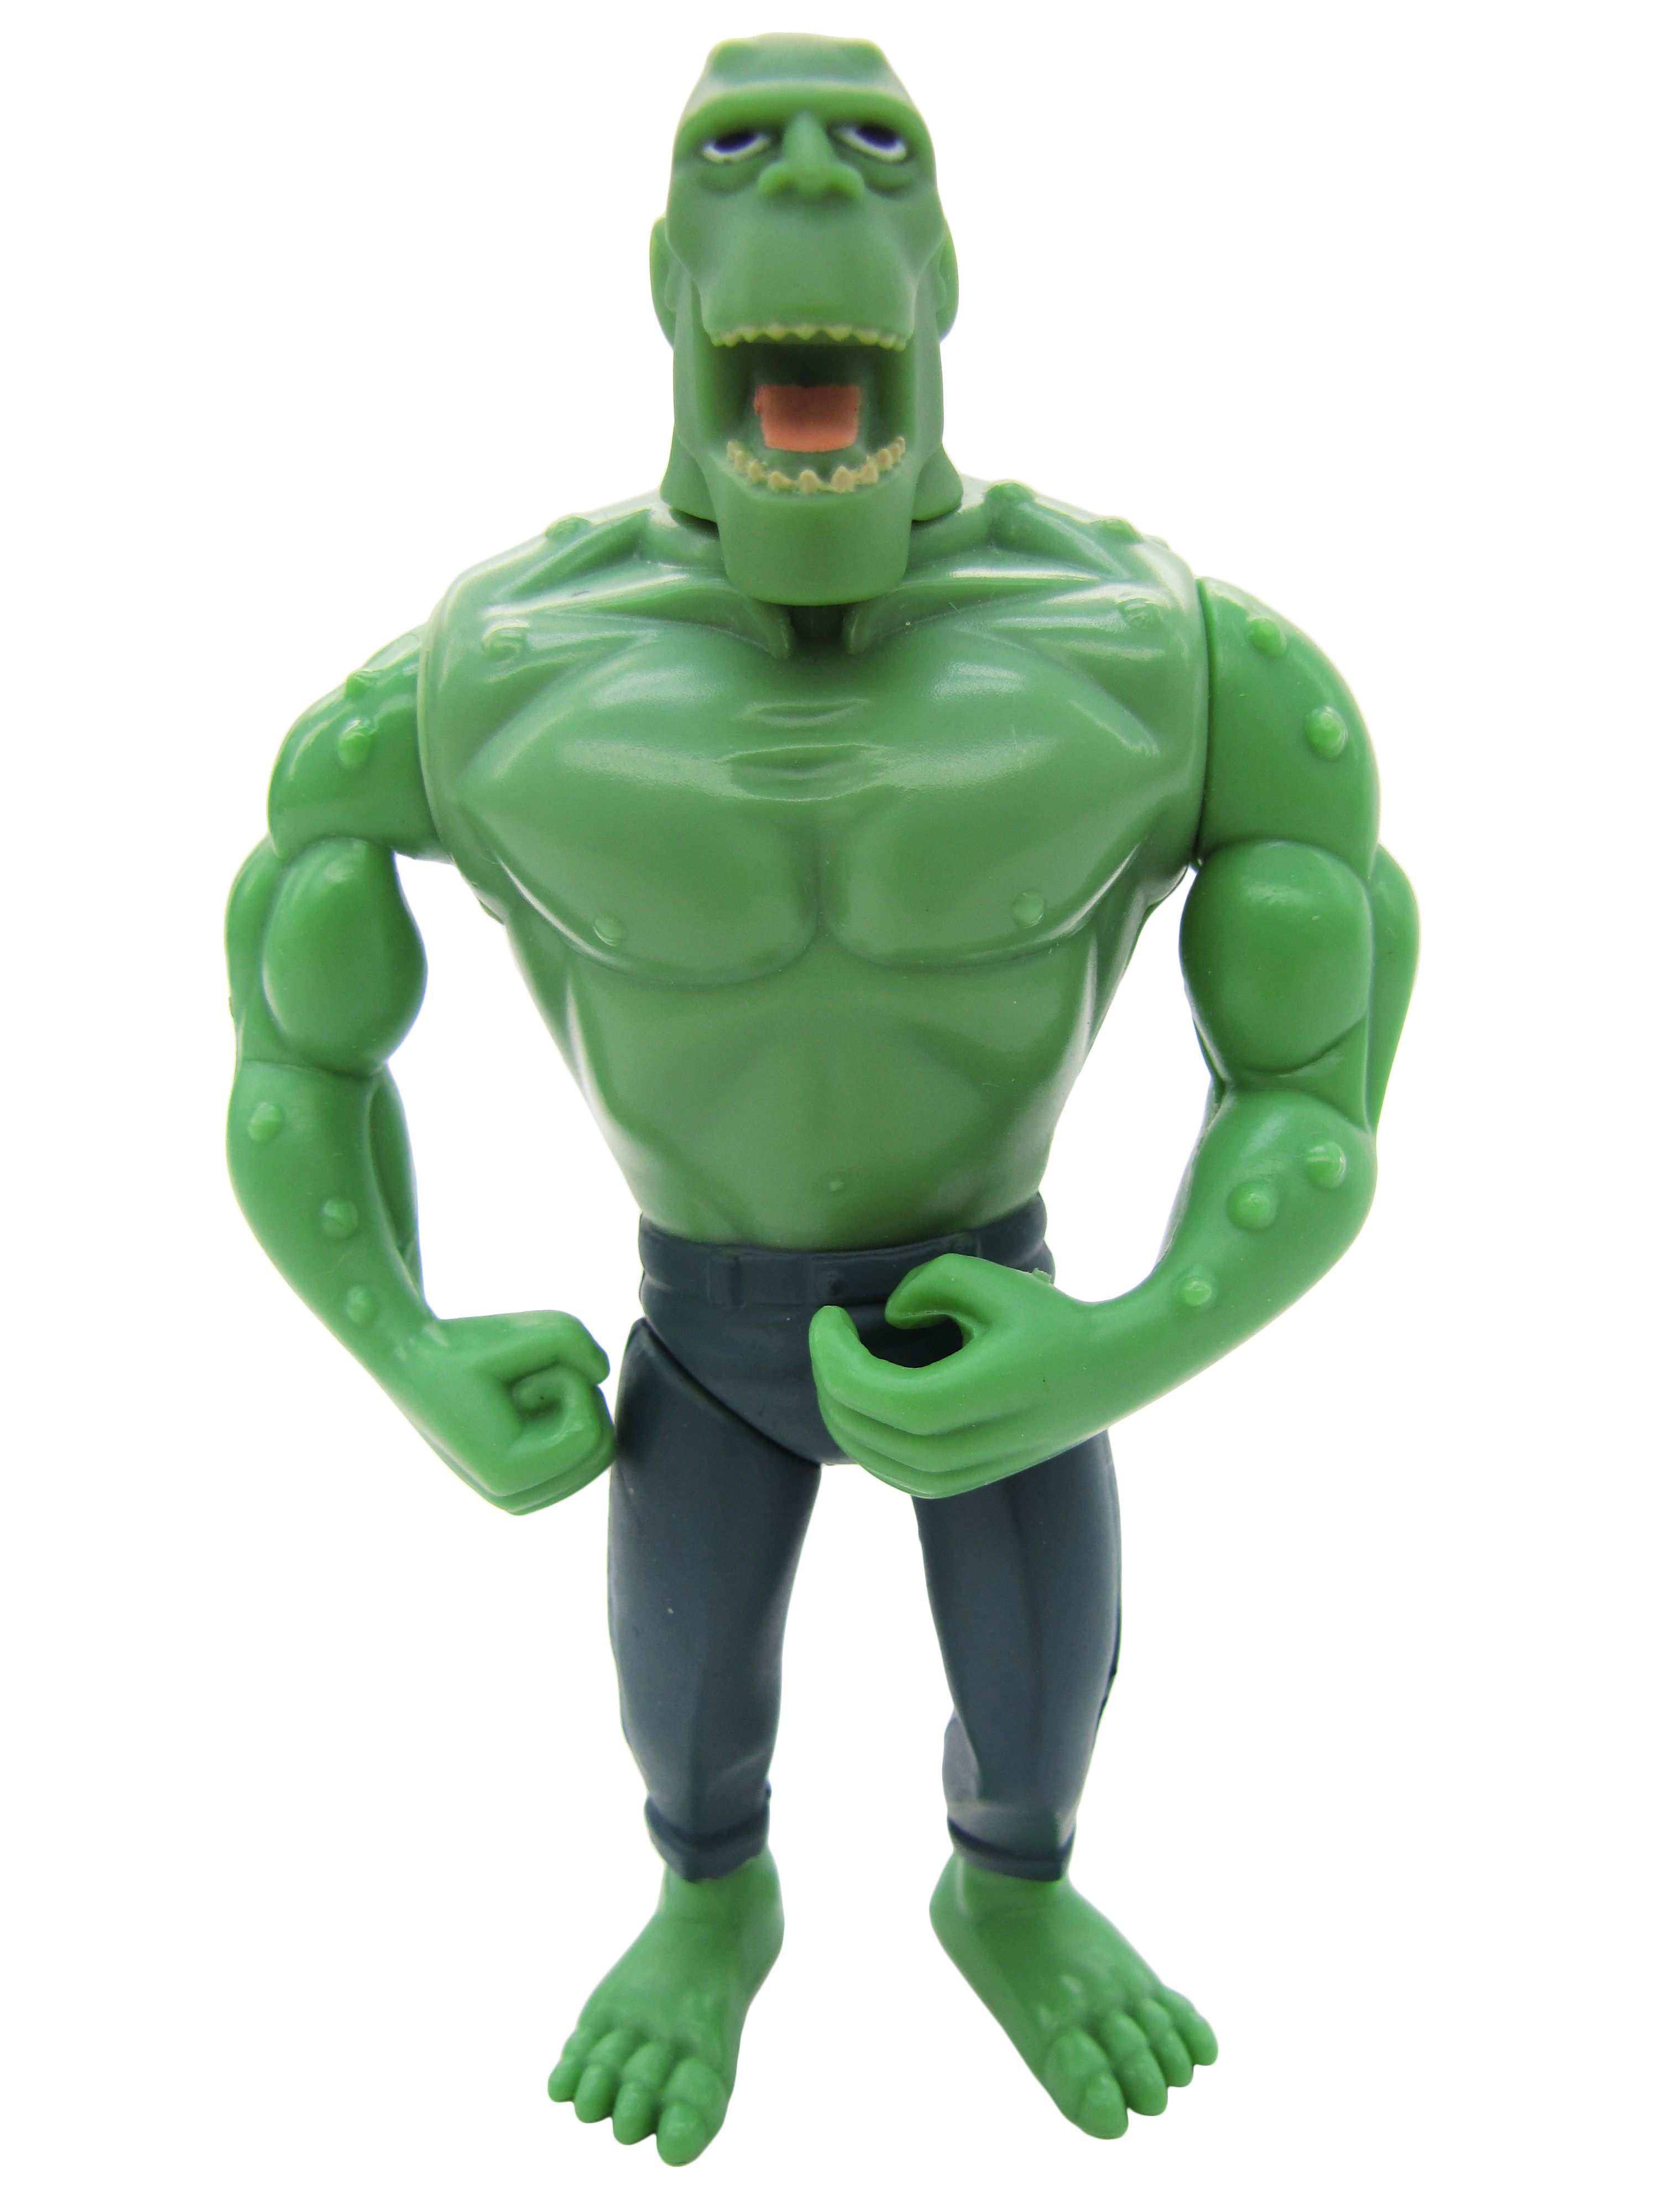 2001 Batman Mission Masters PUPPETS OF CRIME KILLER CROC Mint